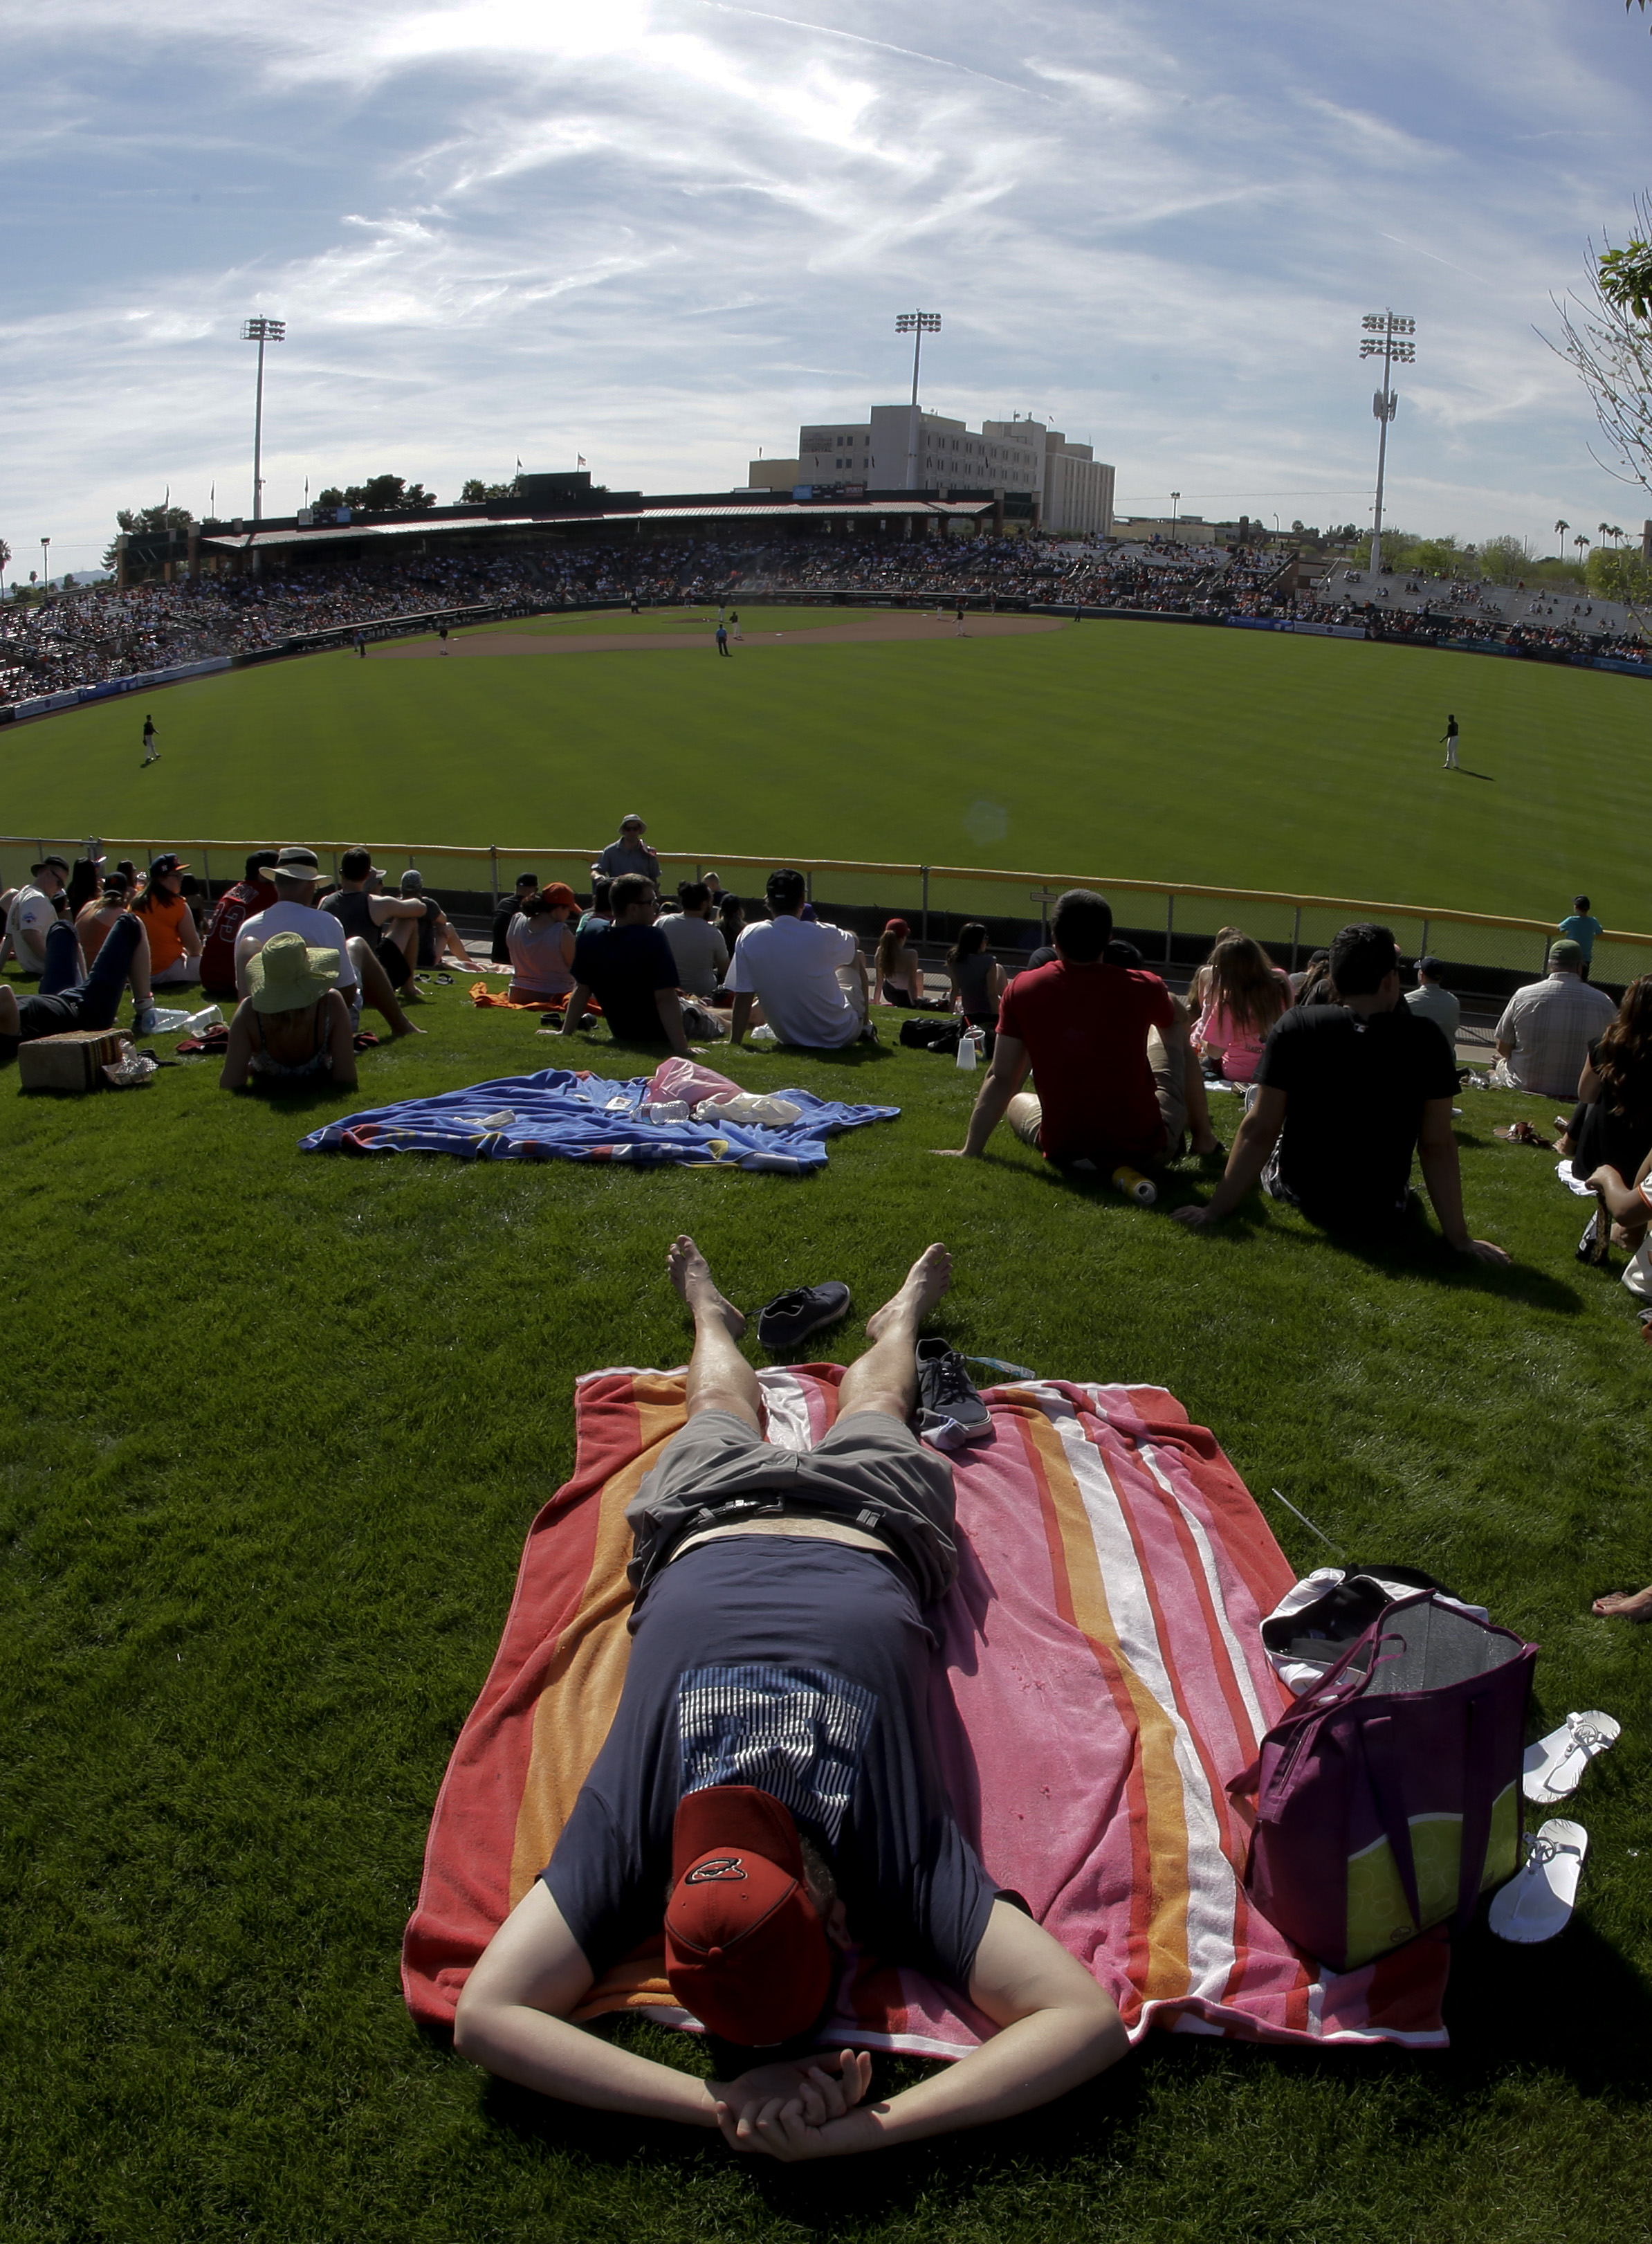 Corey Whitcher naps in the outfield sun during a spring baseball game between the San Francisco Giants and the Los Angeles Angels in Scottsdale, Ariz., Wednesday, March 2, 2016. (AP Photo/Chris Carlson)